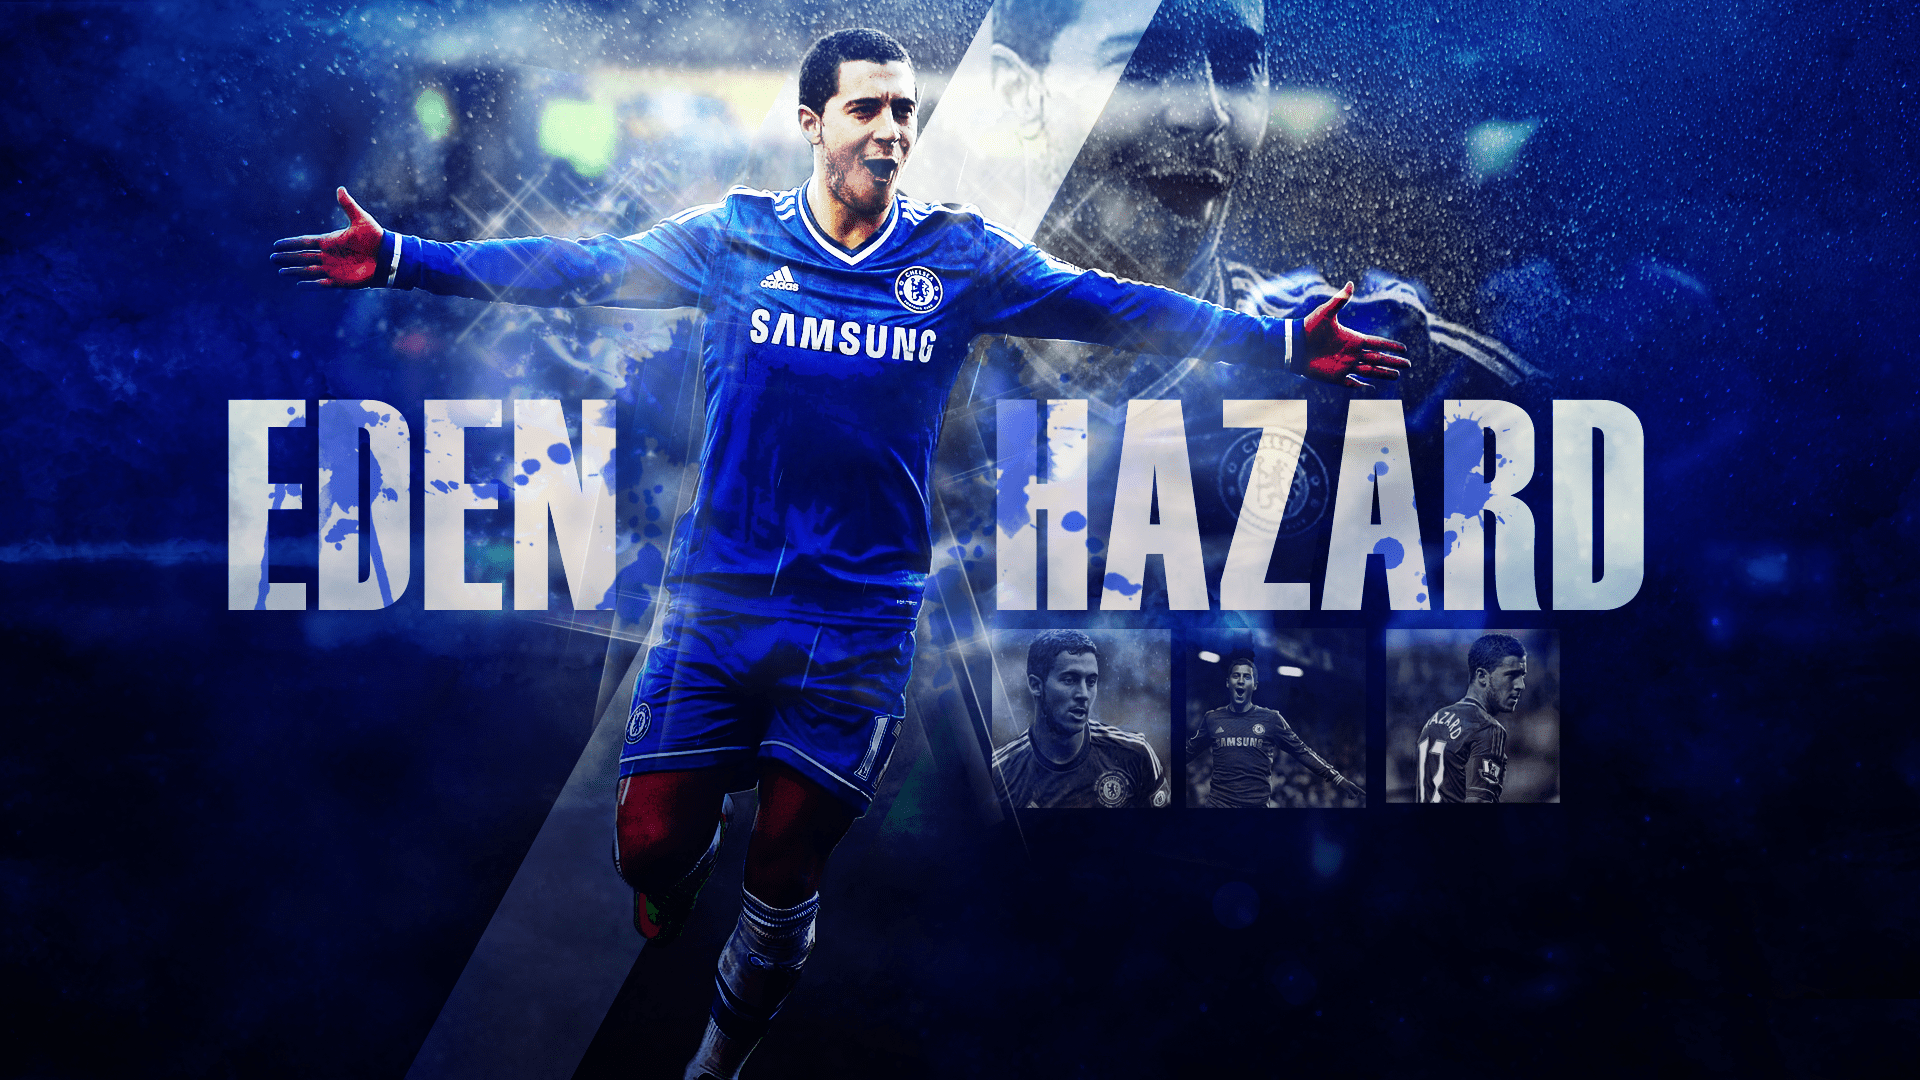 Eden Hazard Hd Wallpapers 7wallpapersnet